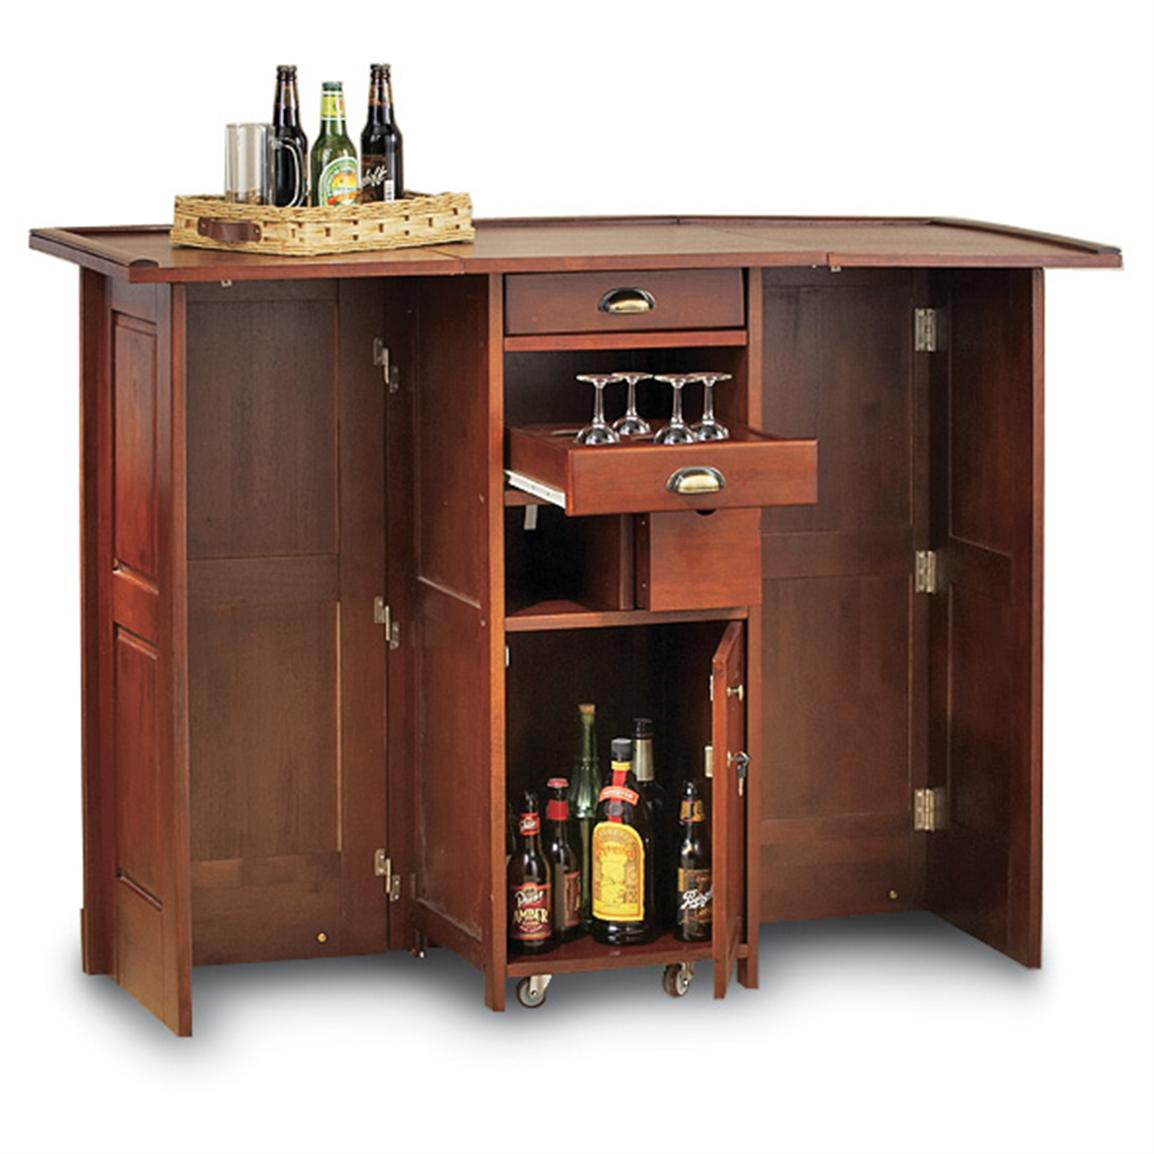 Swing open portable bar 101882 kitchen dining at sportsman 39 s guide - Portable kitchen bar ...